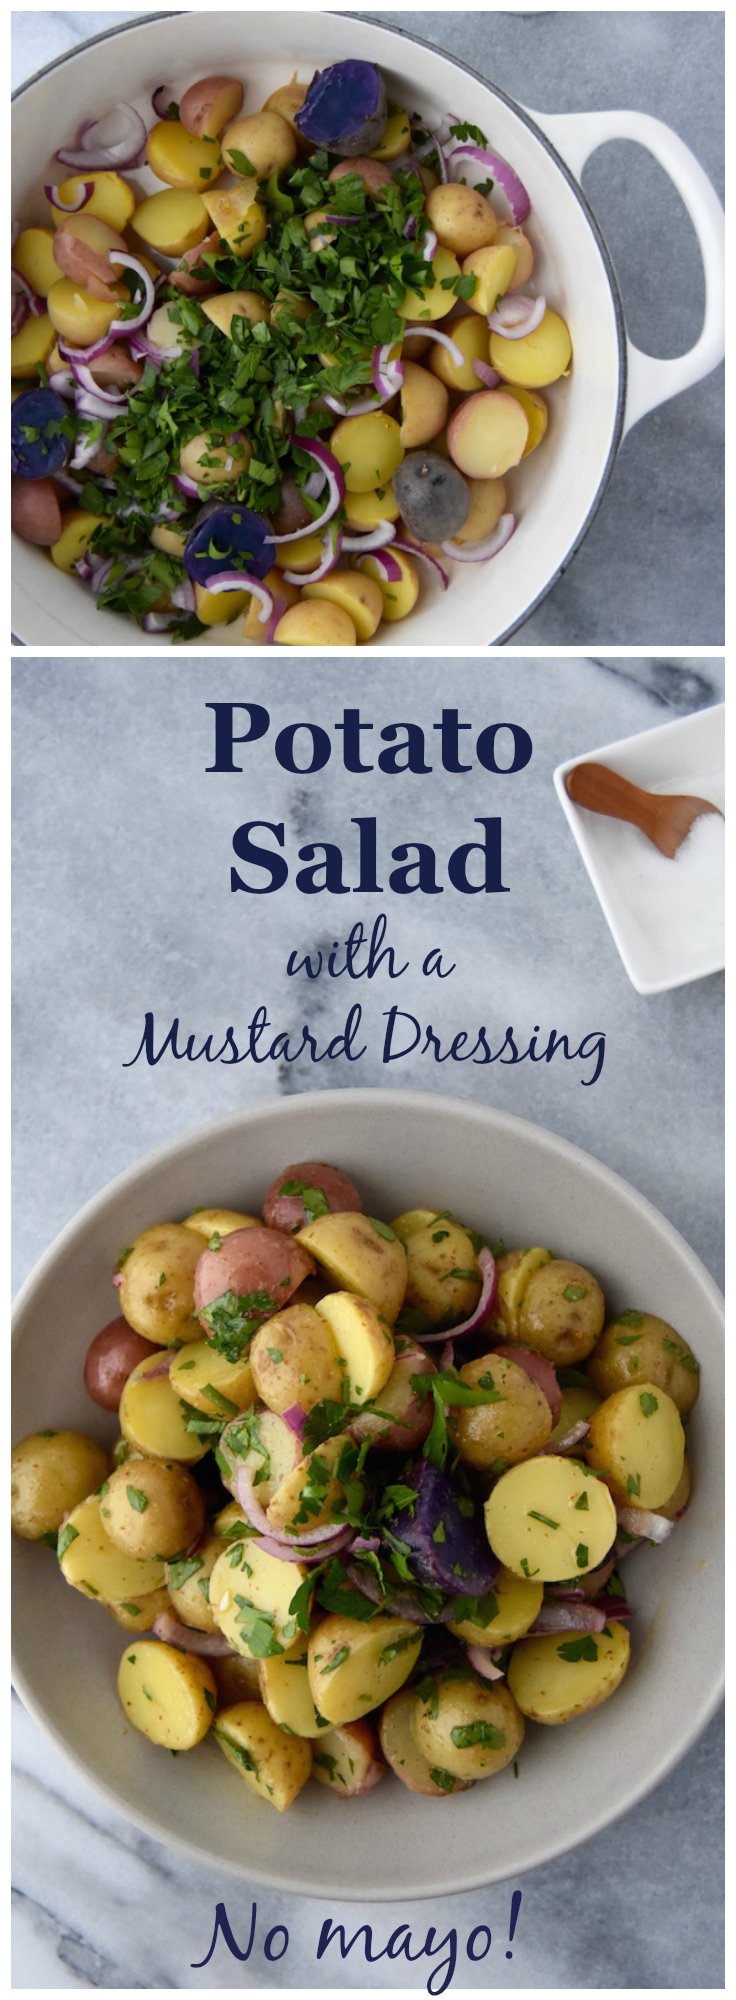 Potato Salad with a Mustard Dressing, perfect for BBQs or picnics where you want to let something sit out for awhile! | uprootkitchen.com